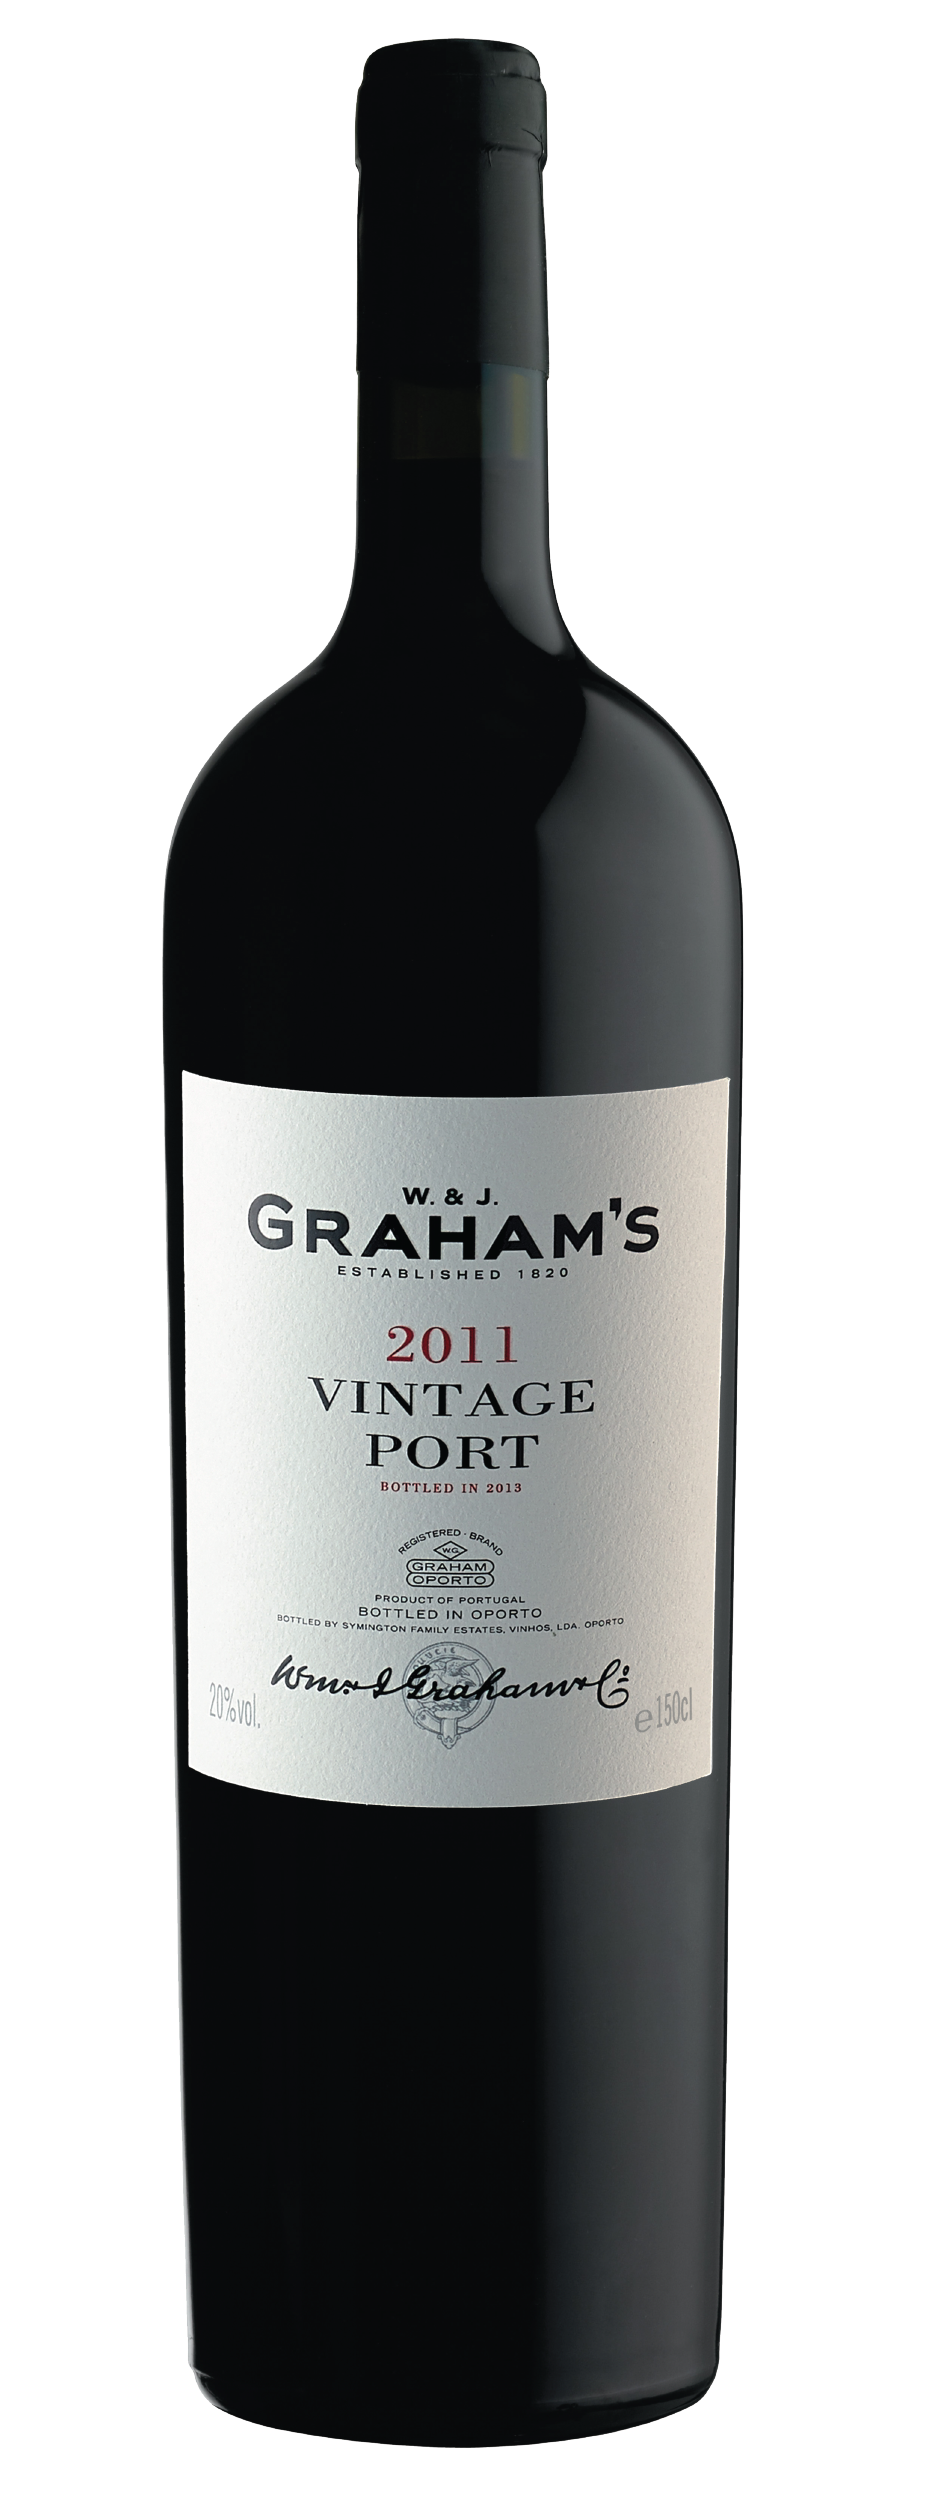 Product Image for GRAHAM'S VINTAGE PORT 2011 - MAGNUM